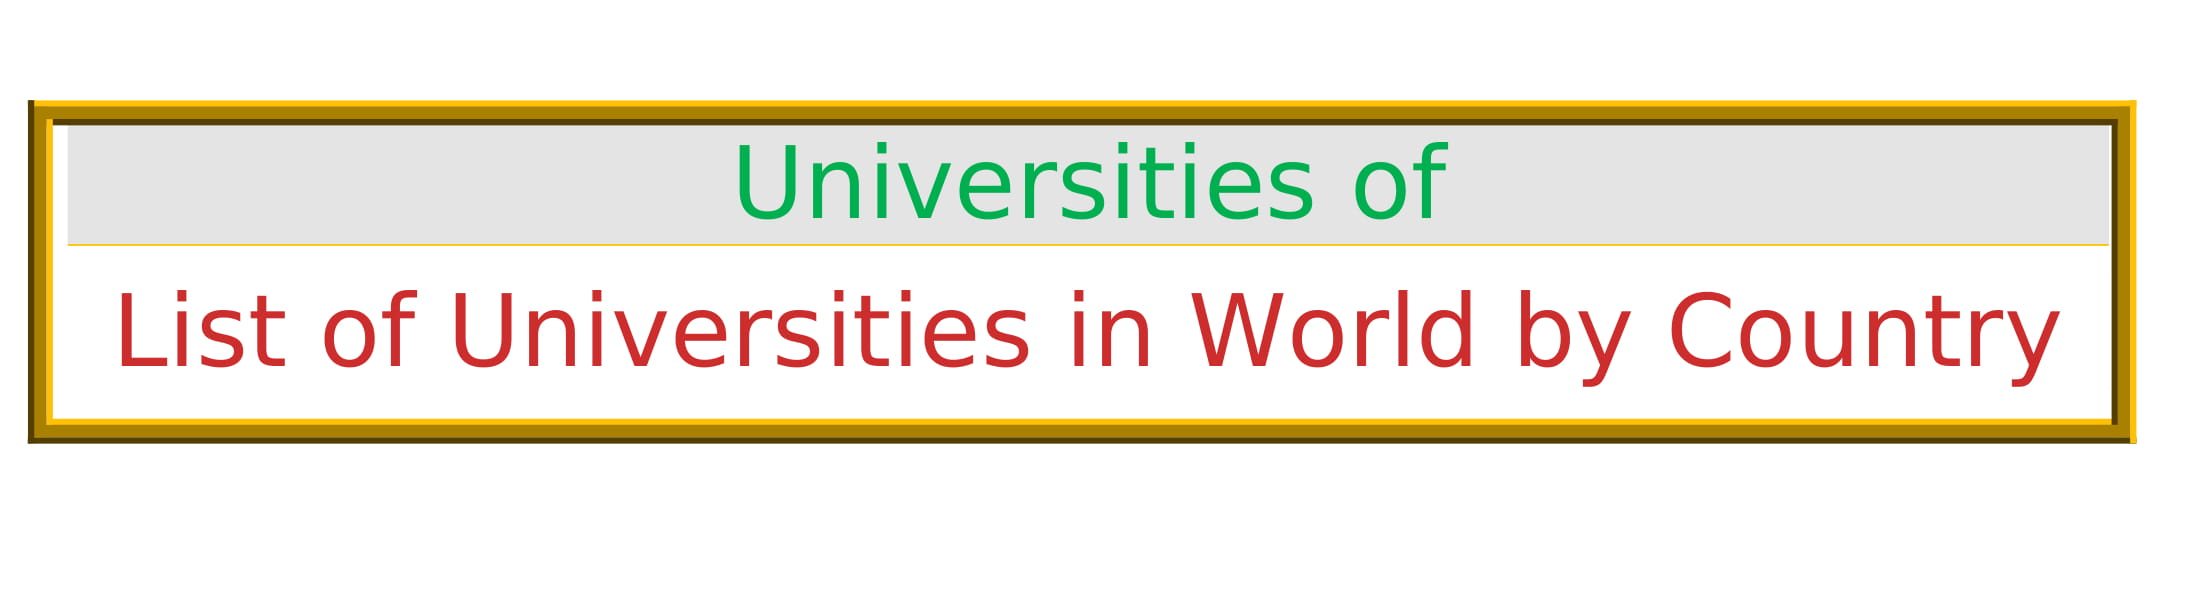 List of Universities in World by Country